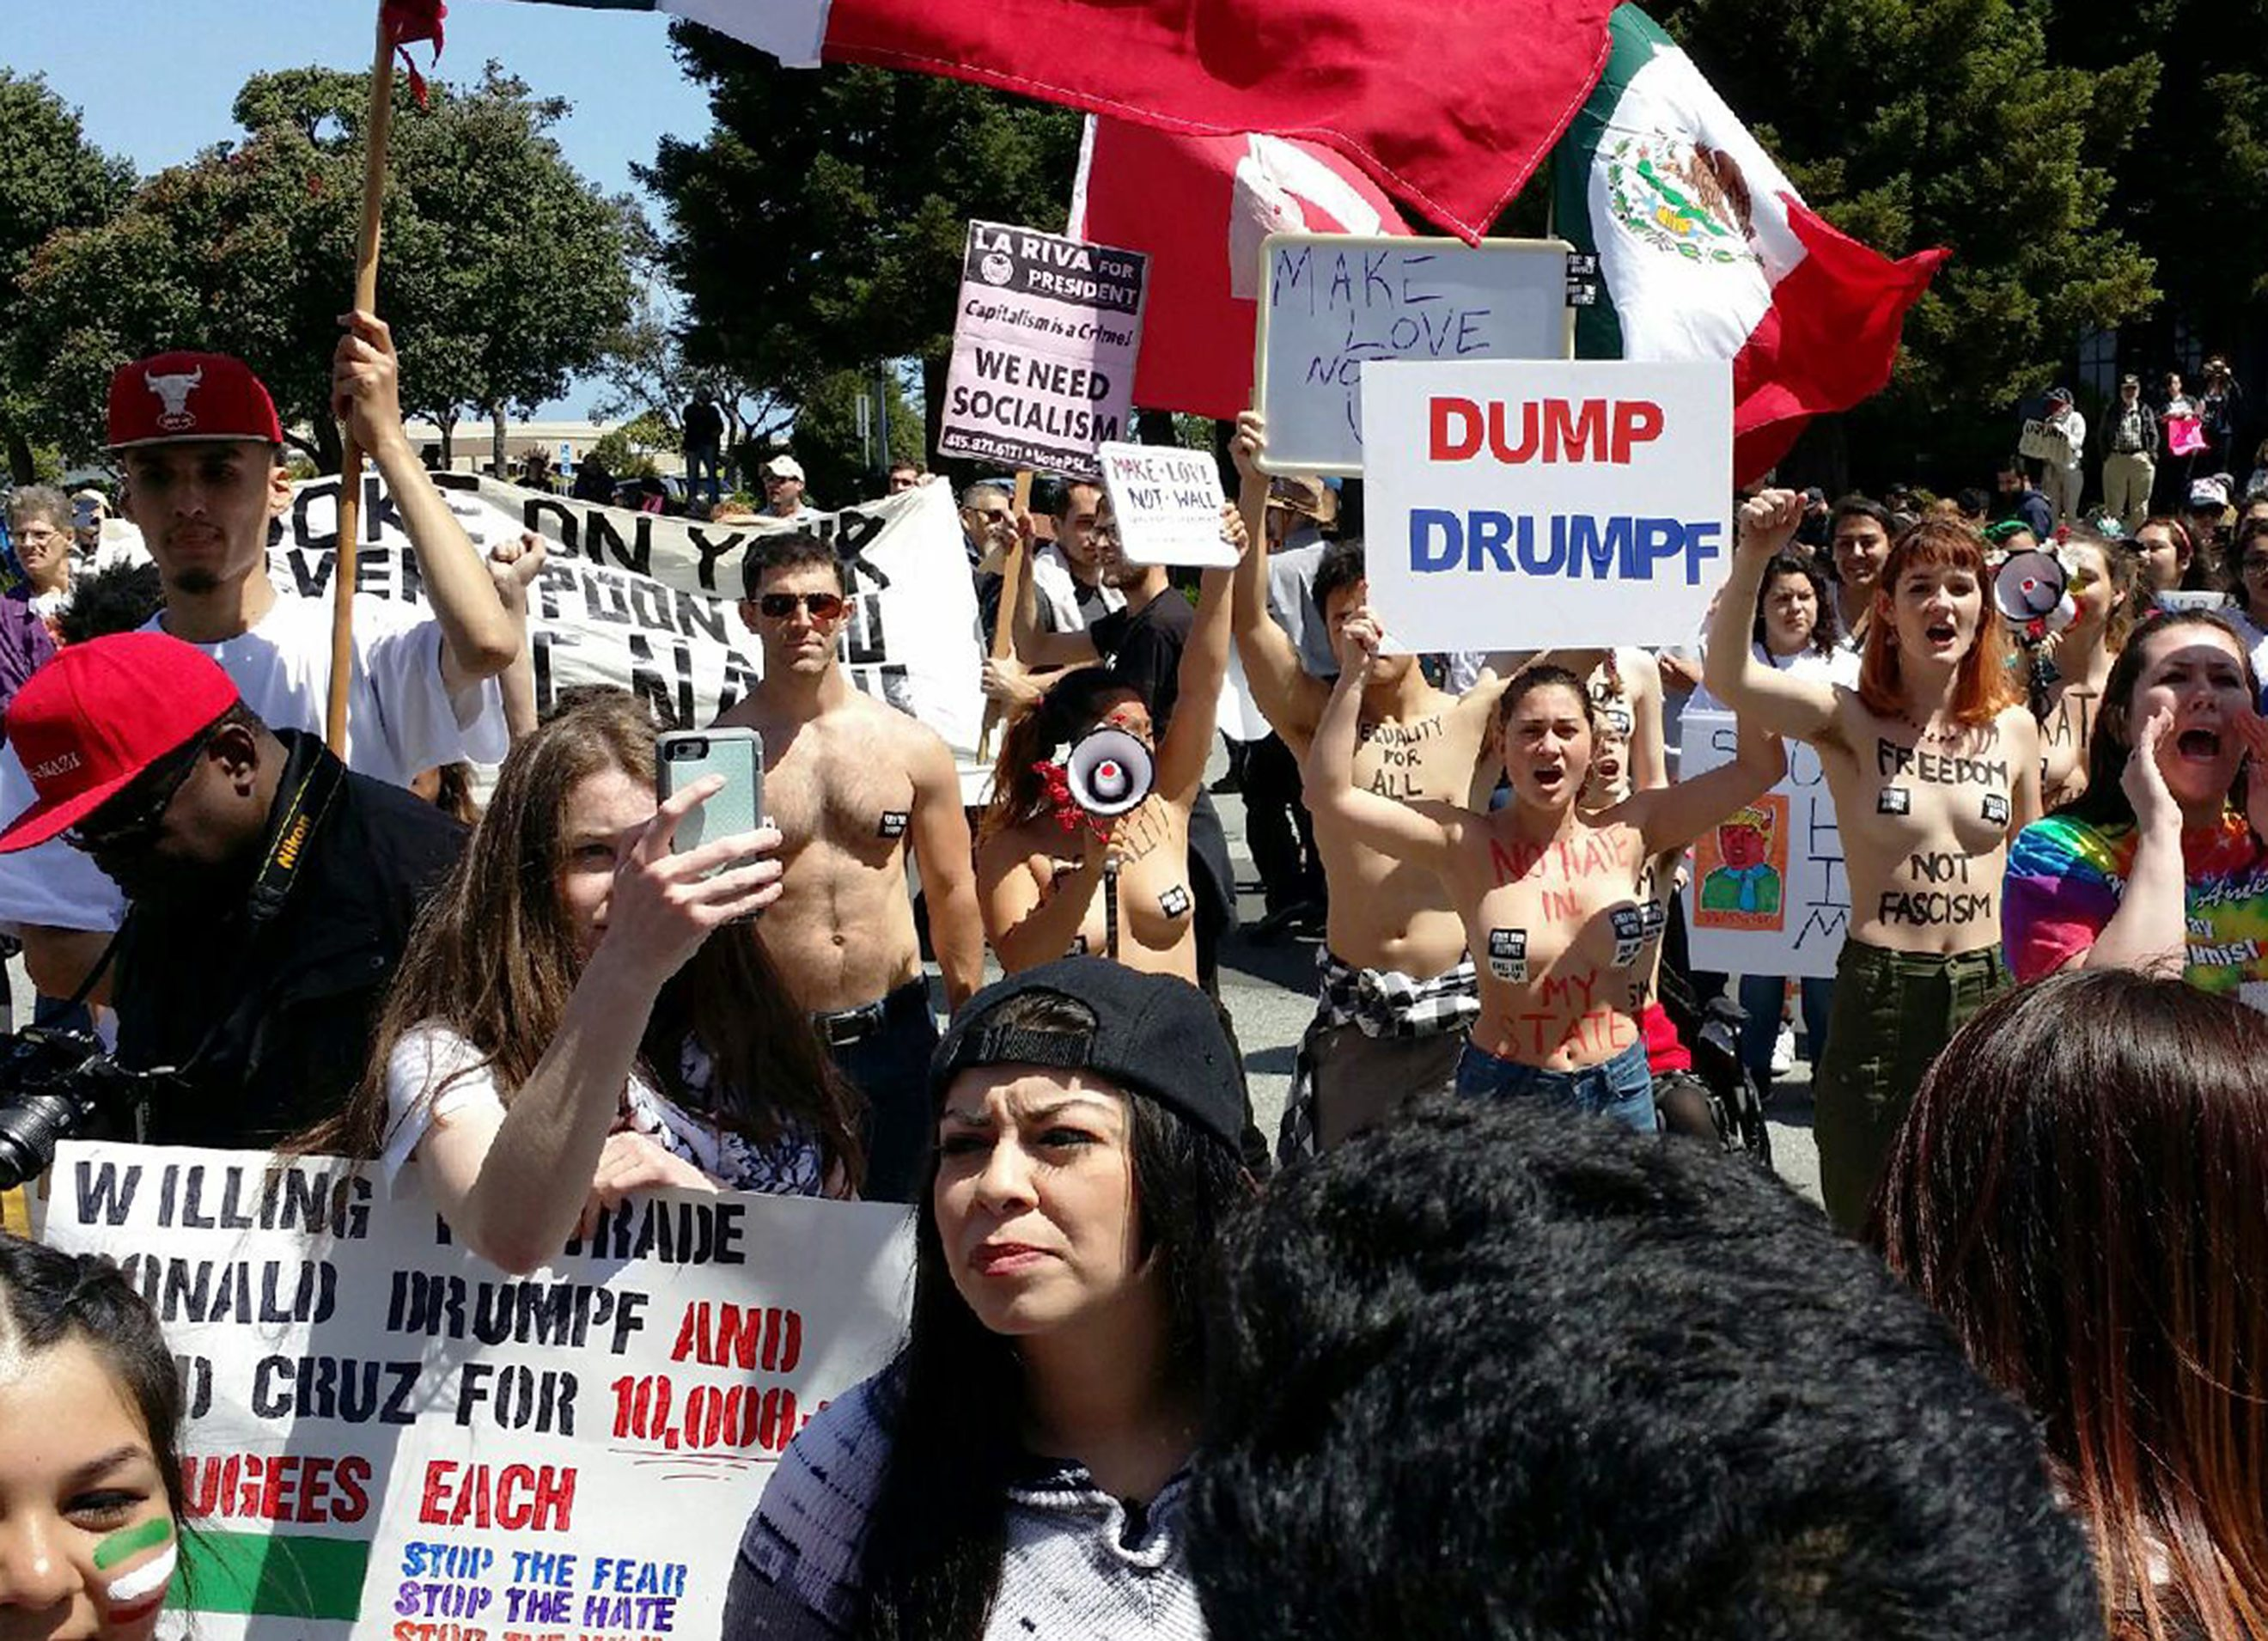 UPDATE: Five arrested in anti-Trump protest at GOP convention in Burlingame